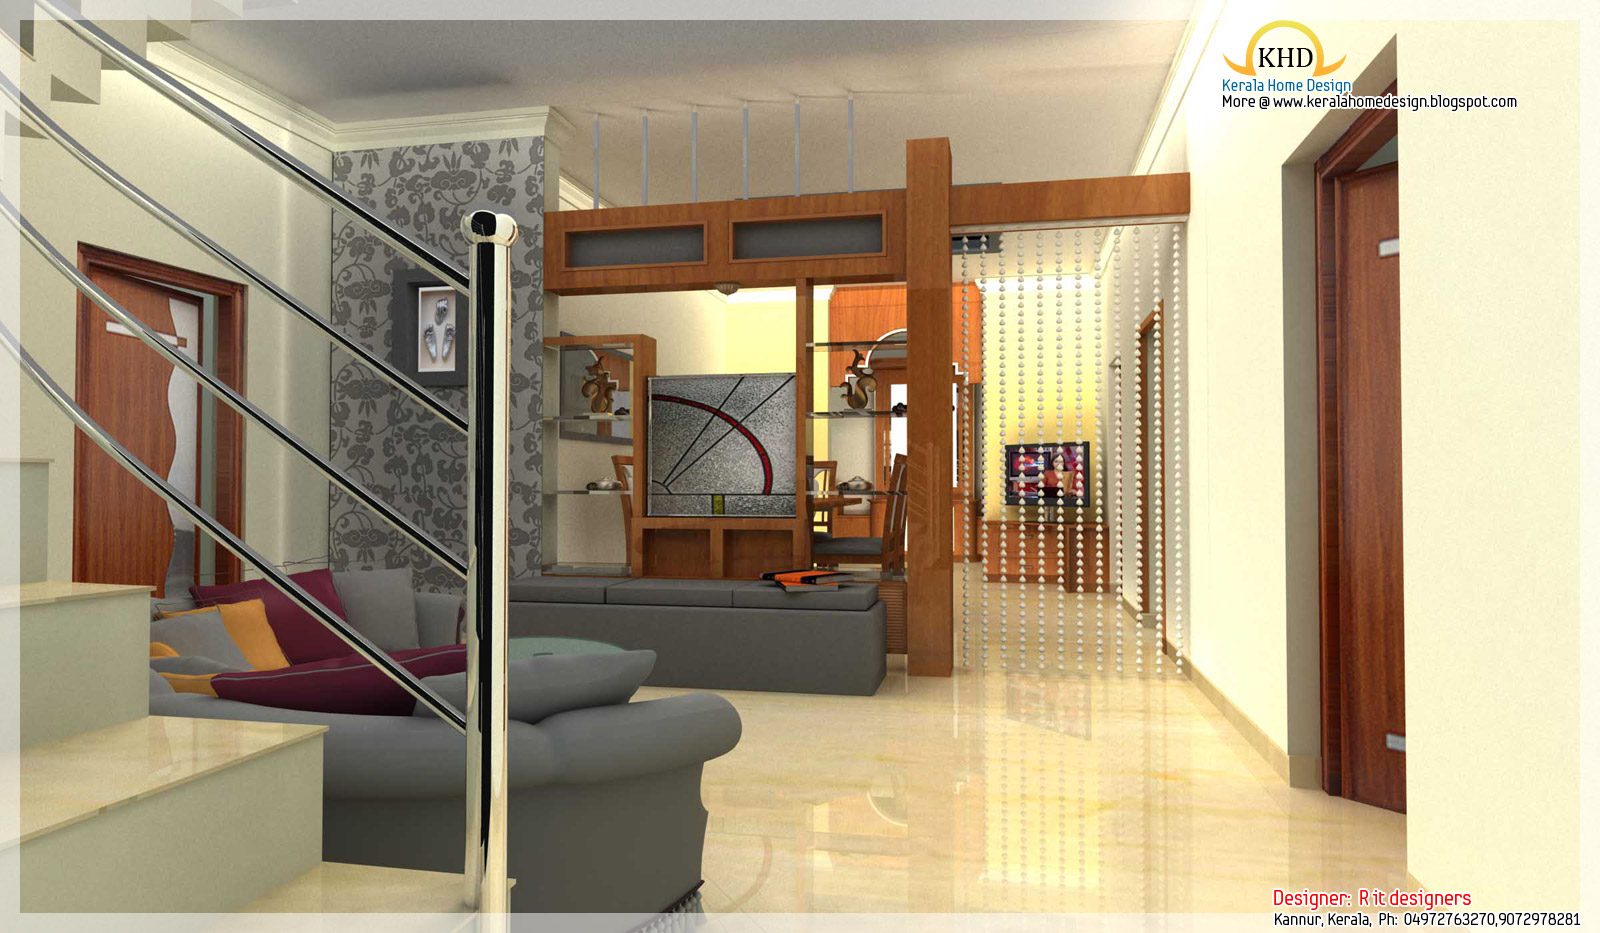 Interior design idea renderings kerala home design and for Interior design plans for houses